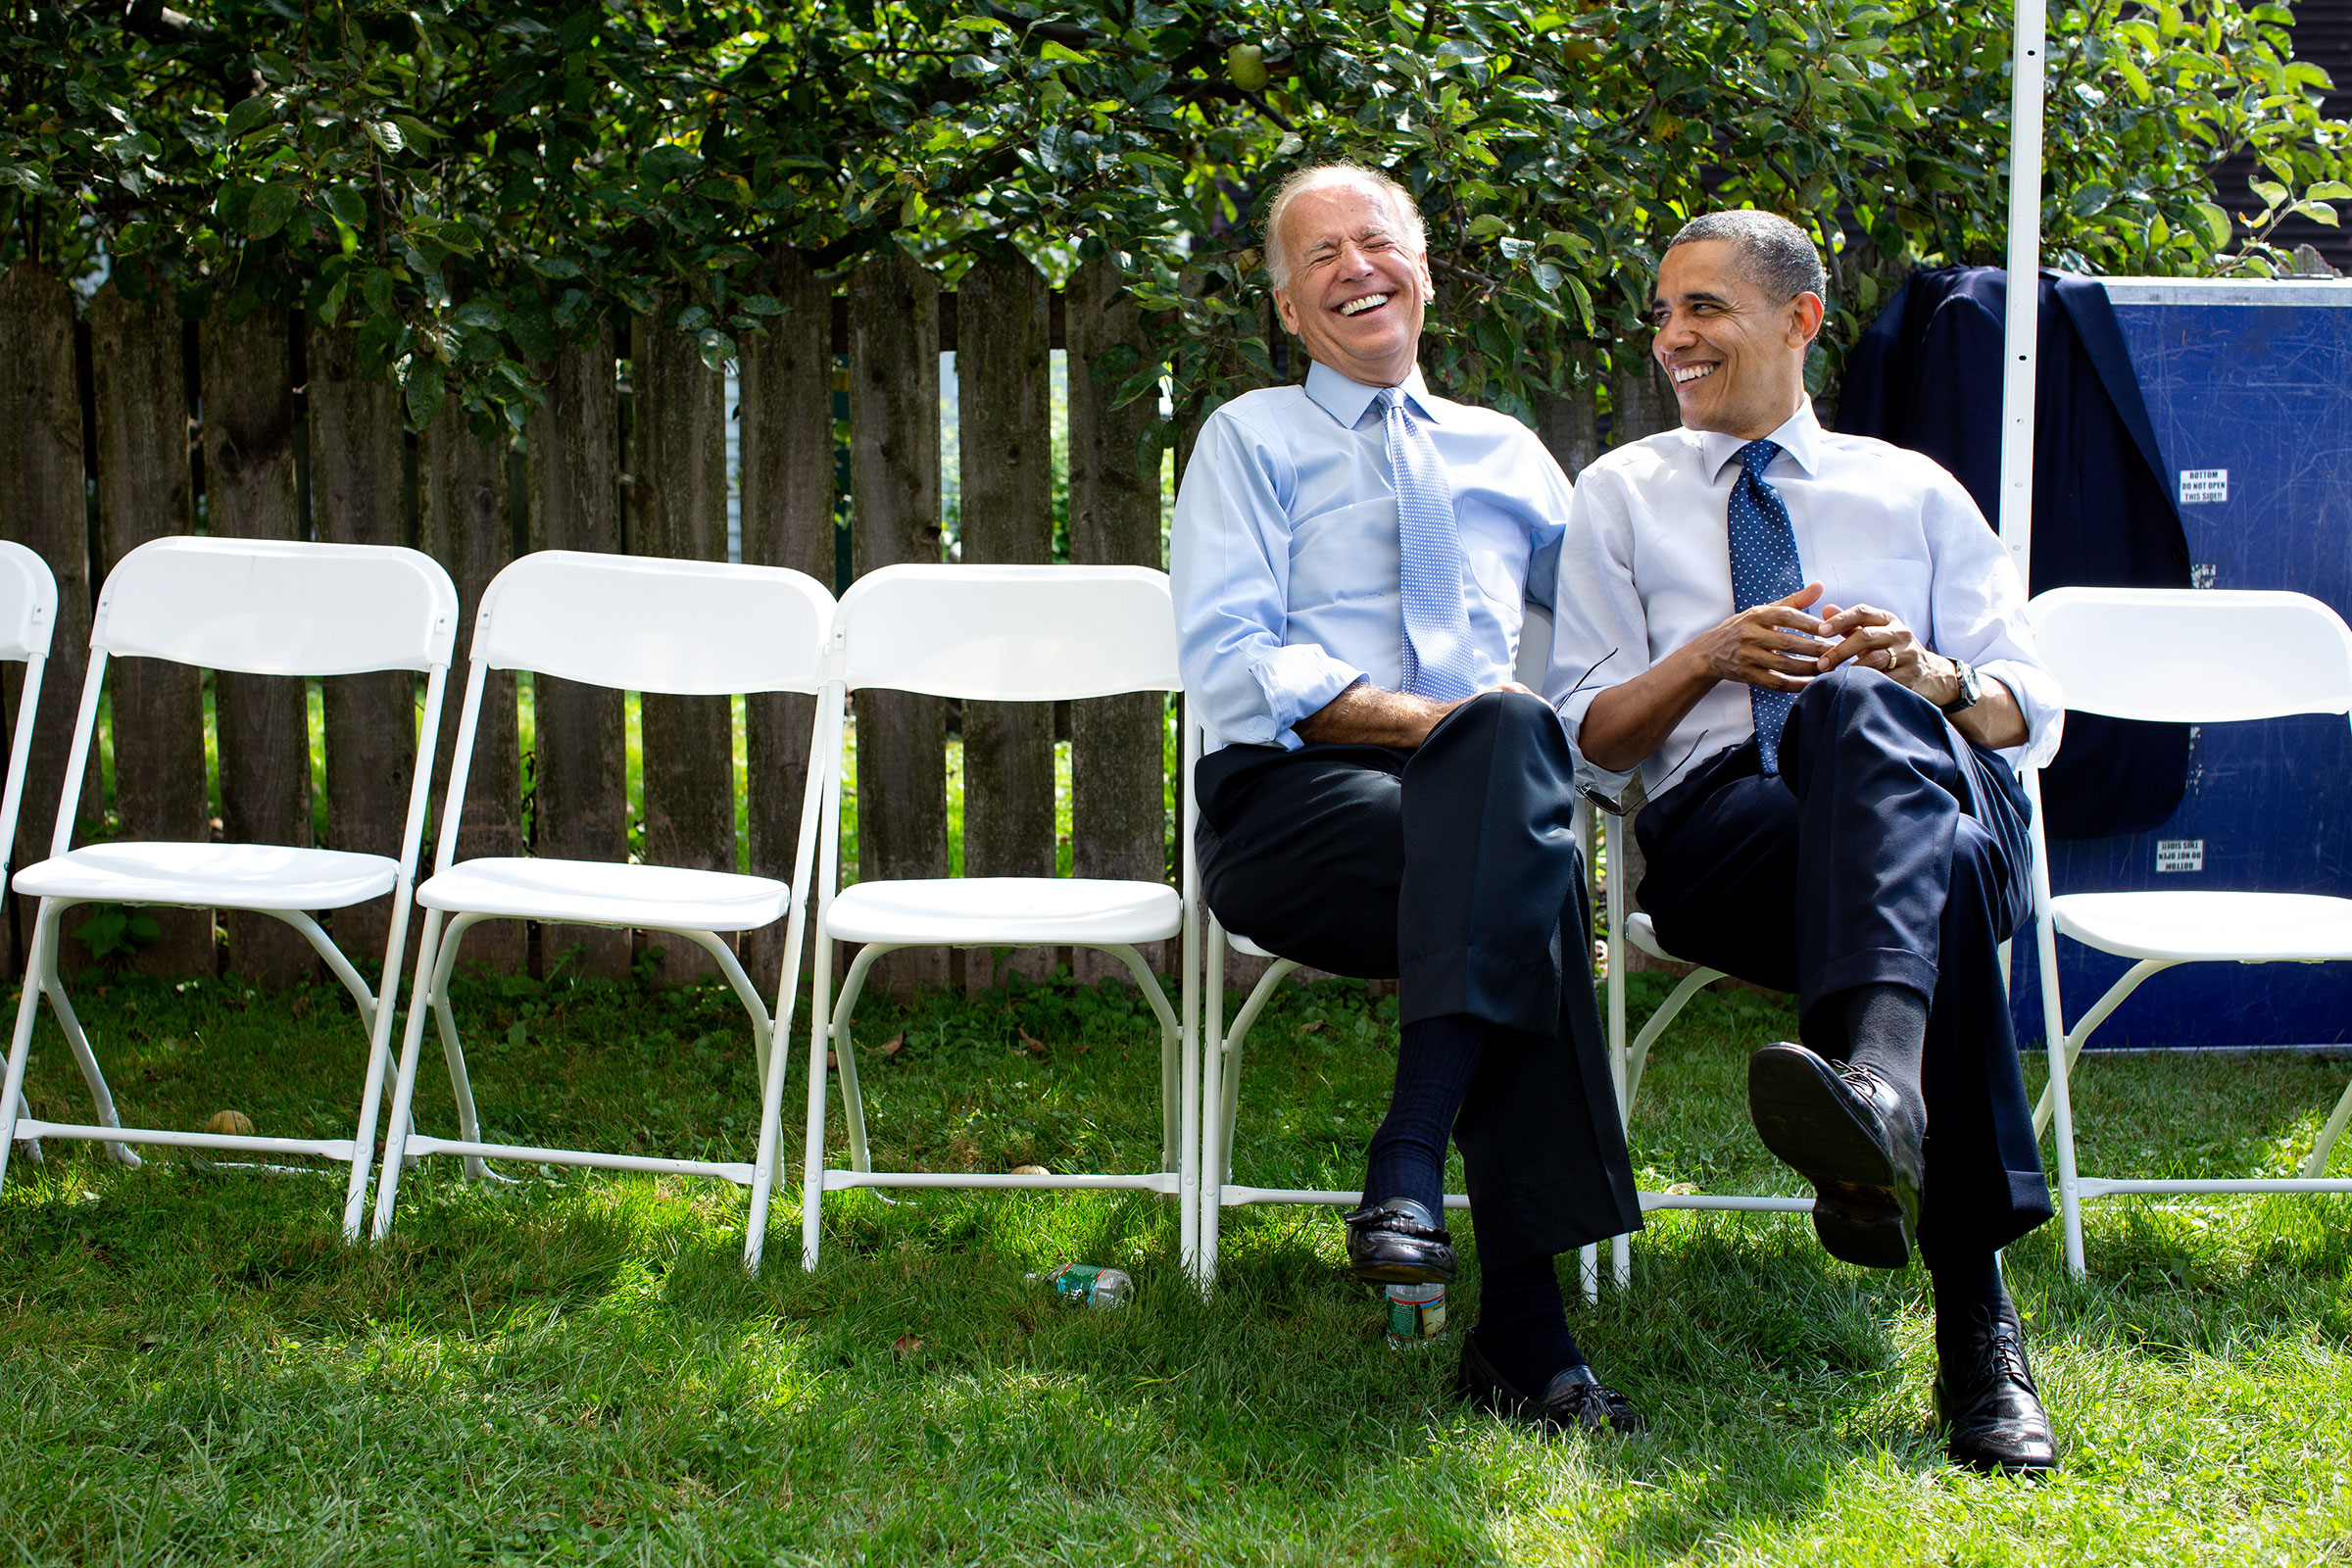 President Barack Obama and Vice President Joe Biden talk backstage during a grassroots campaign event at Strawbery Banke Museum in Portsmouth, N.H., on Sept. 7, 2012.